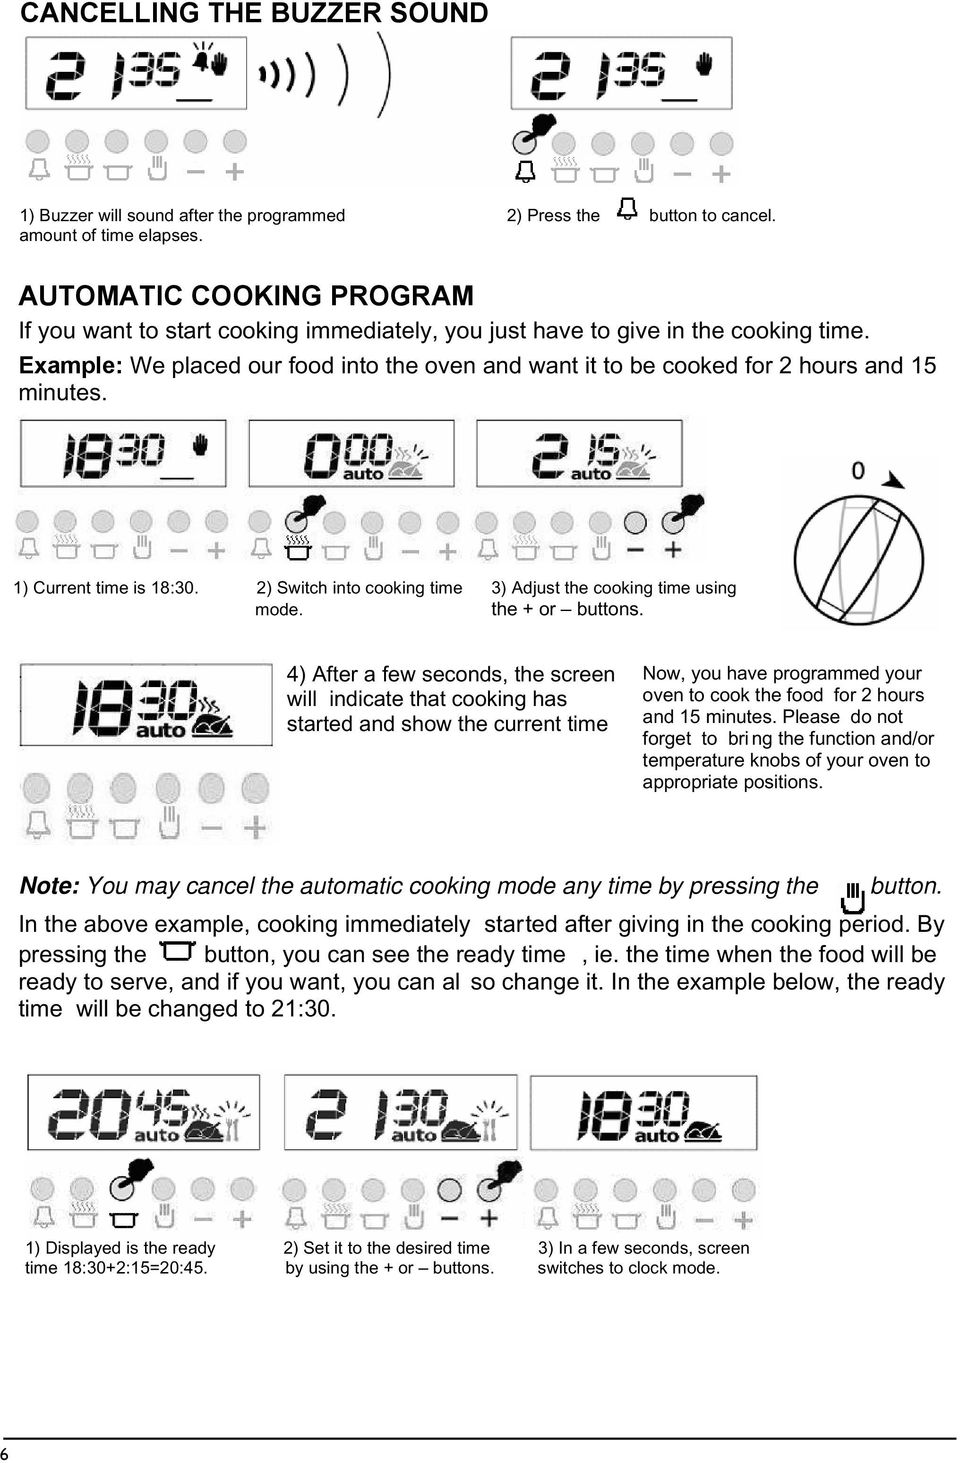 Example: We placed our food into the oven and want it to be cooked for 2 hours and 5 minutes. ) Current time is 8:0. 2) Switch into cooking time ) Adjust the cooking time using mode. the + or buttons.